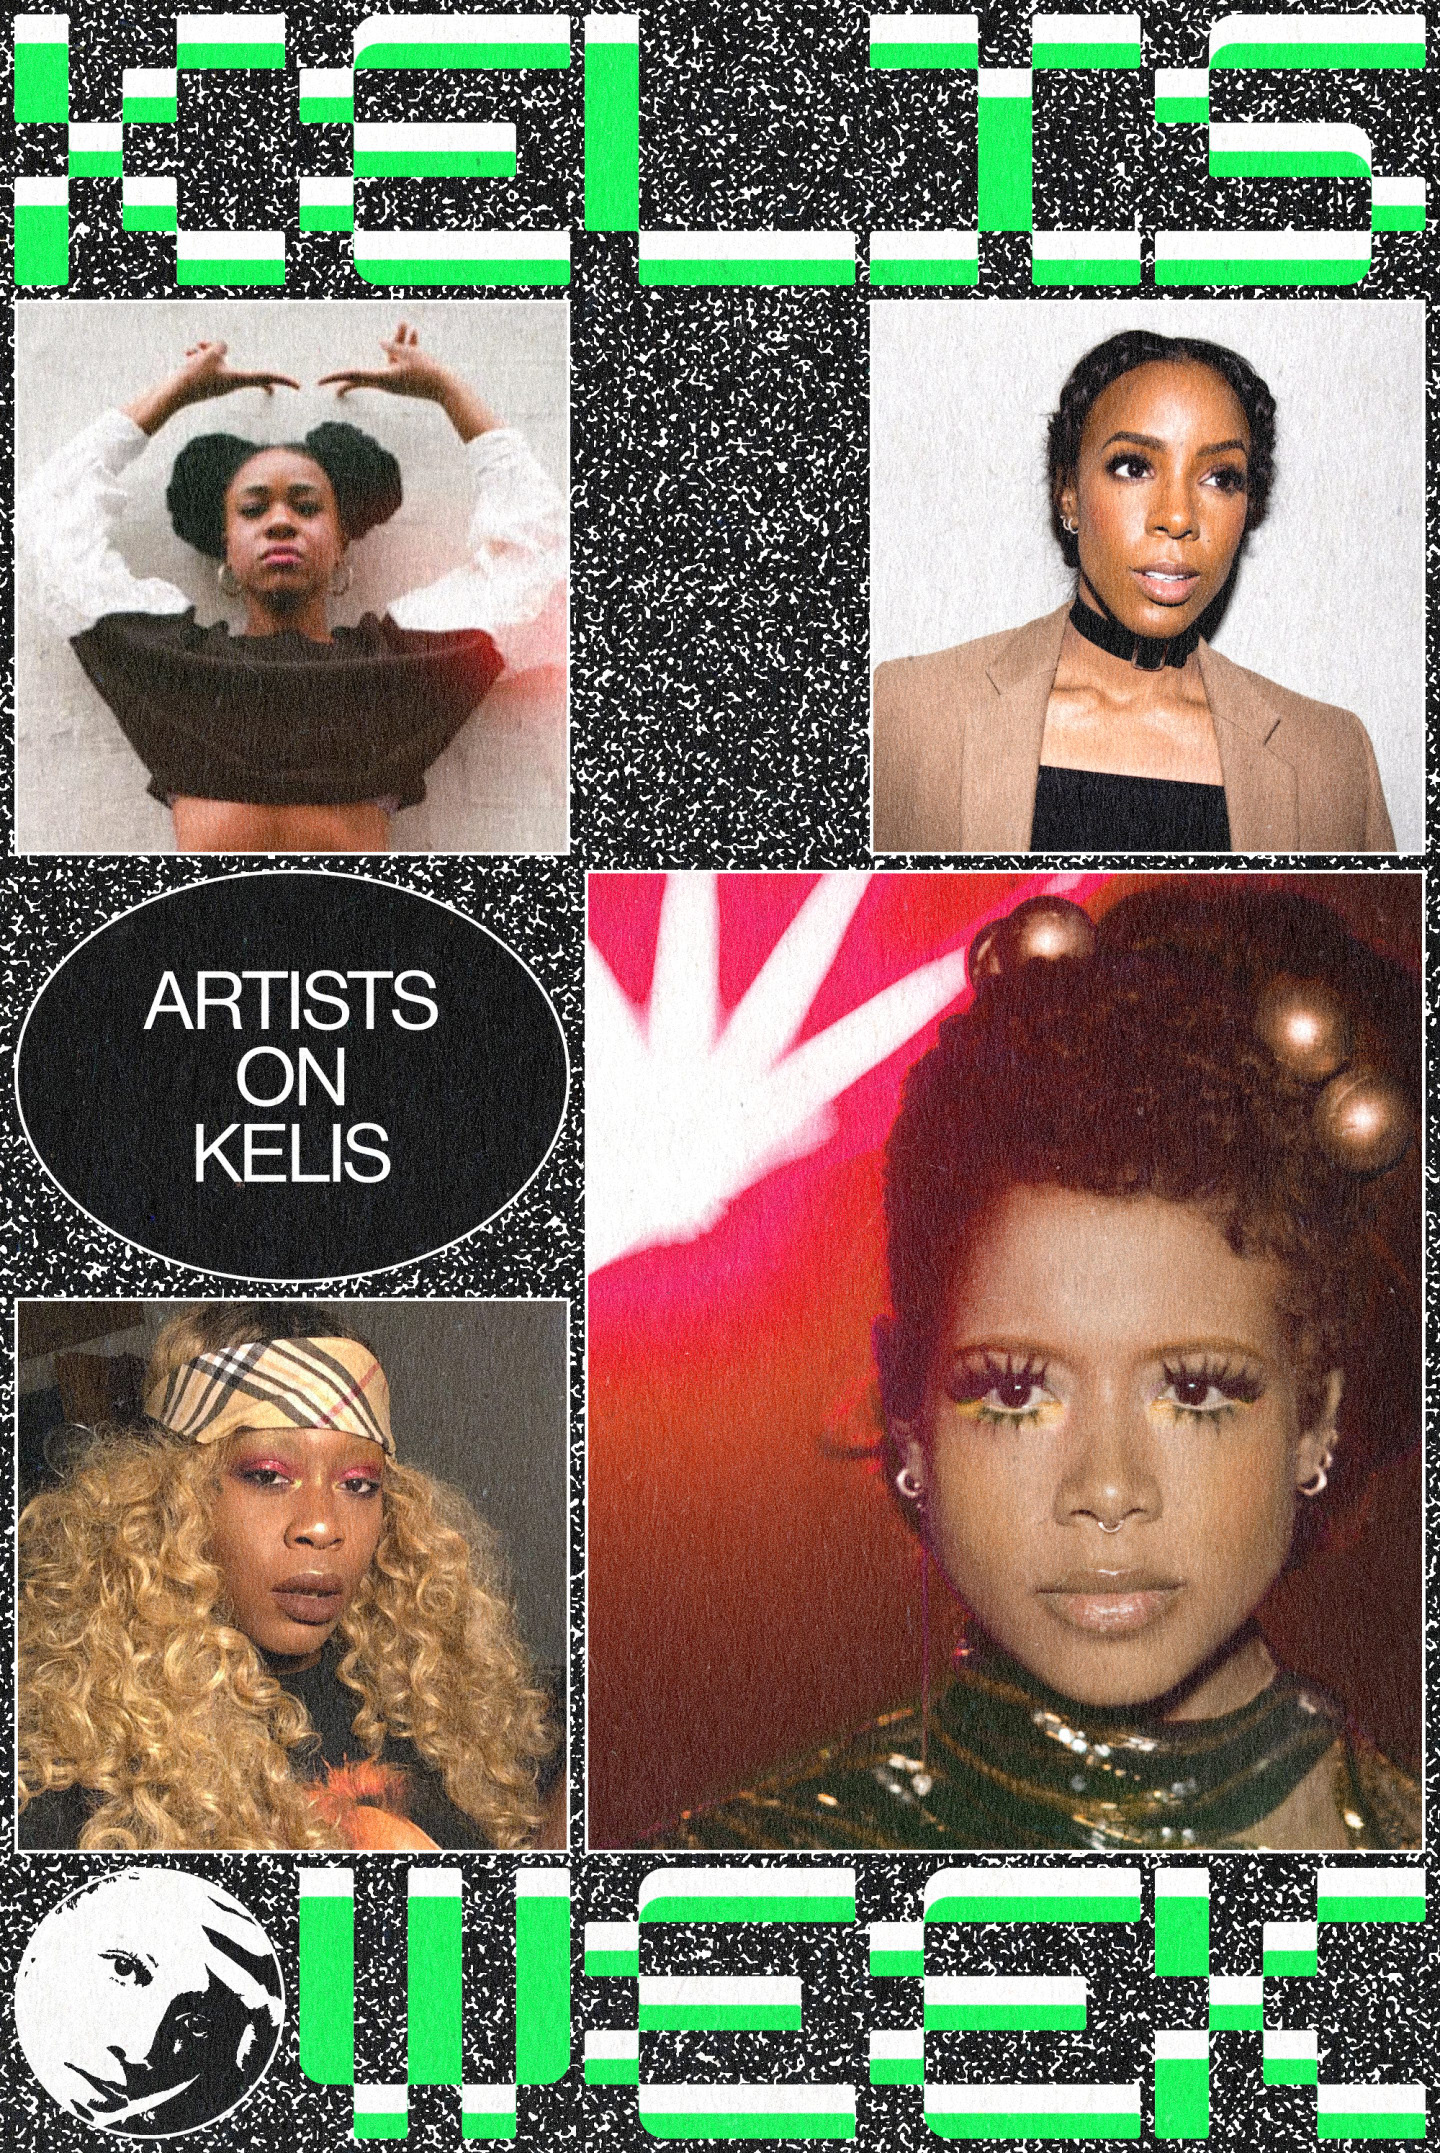 Kelly Rowland, BbyMutha, Angie Martinez and more on why Kelis is a true visionary